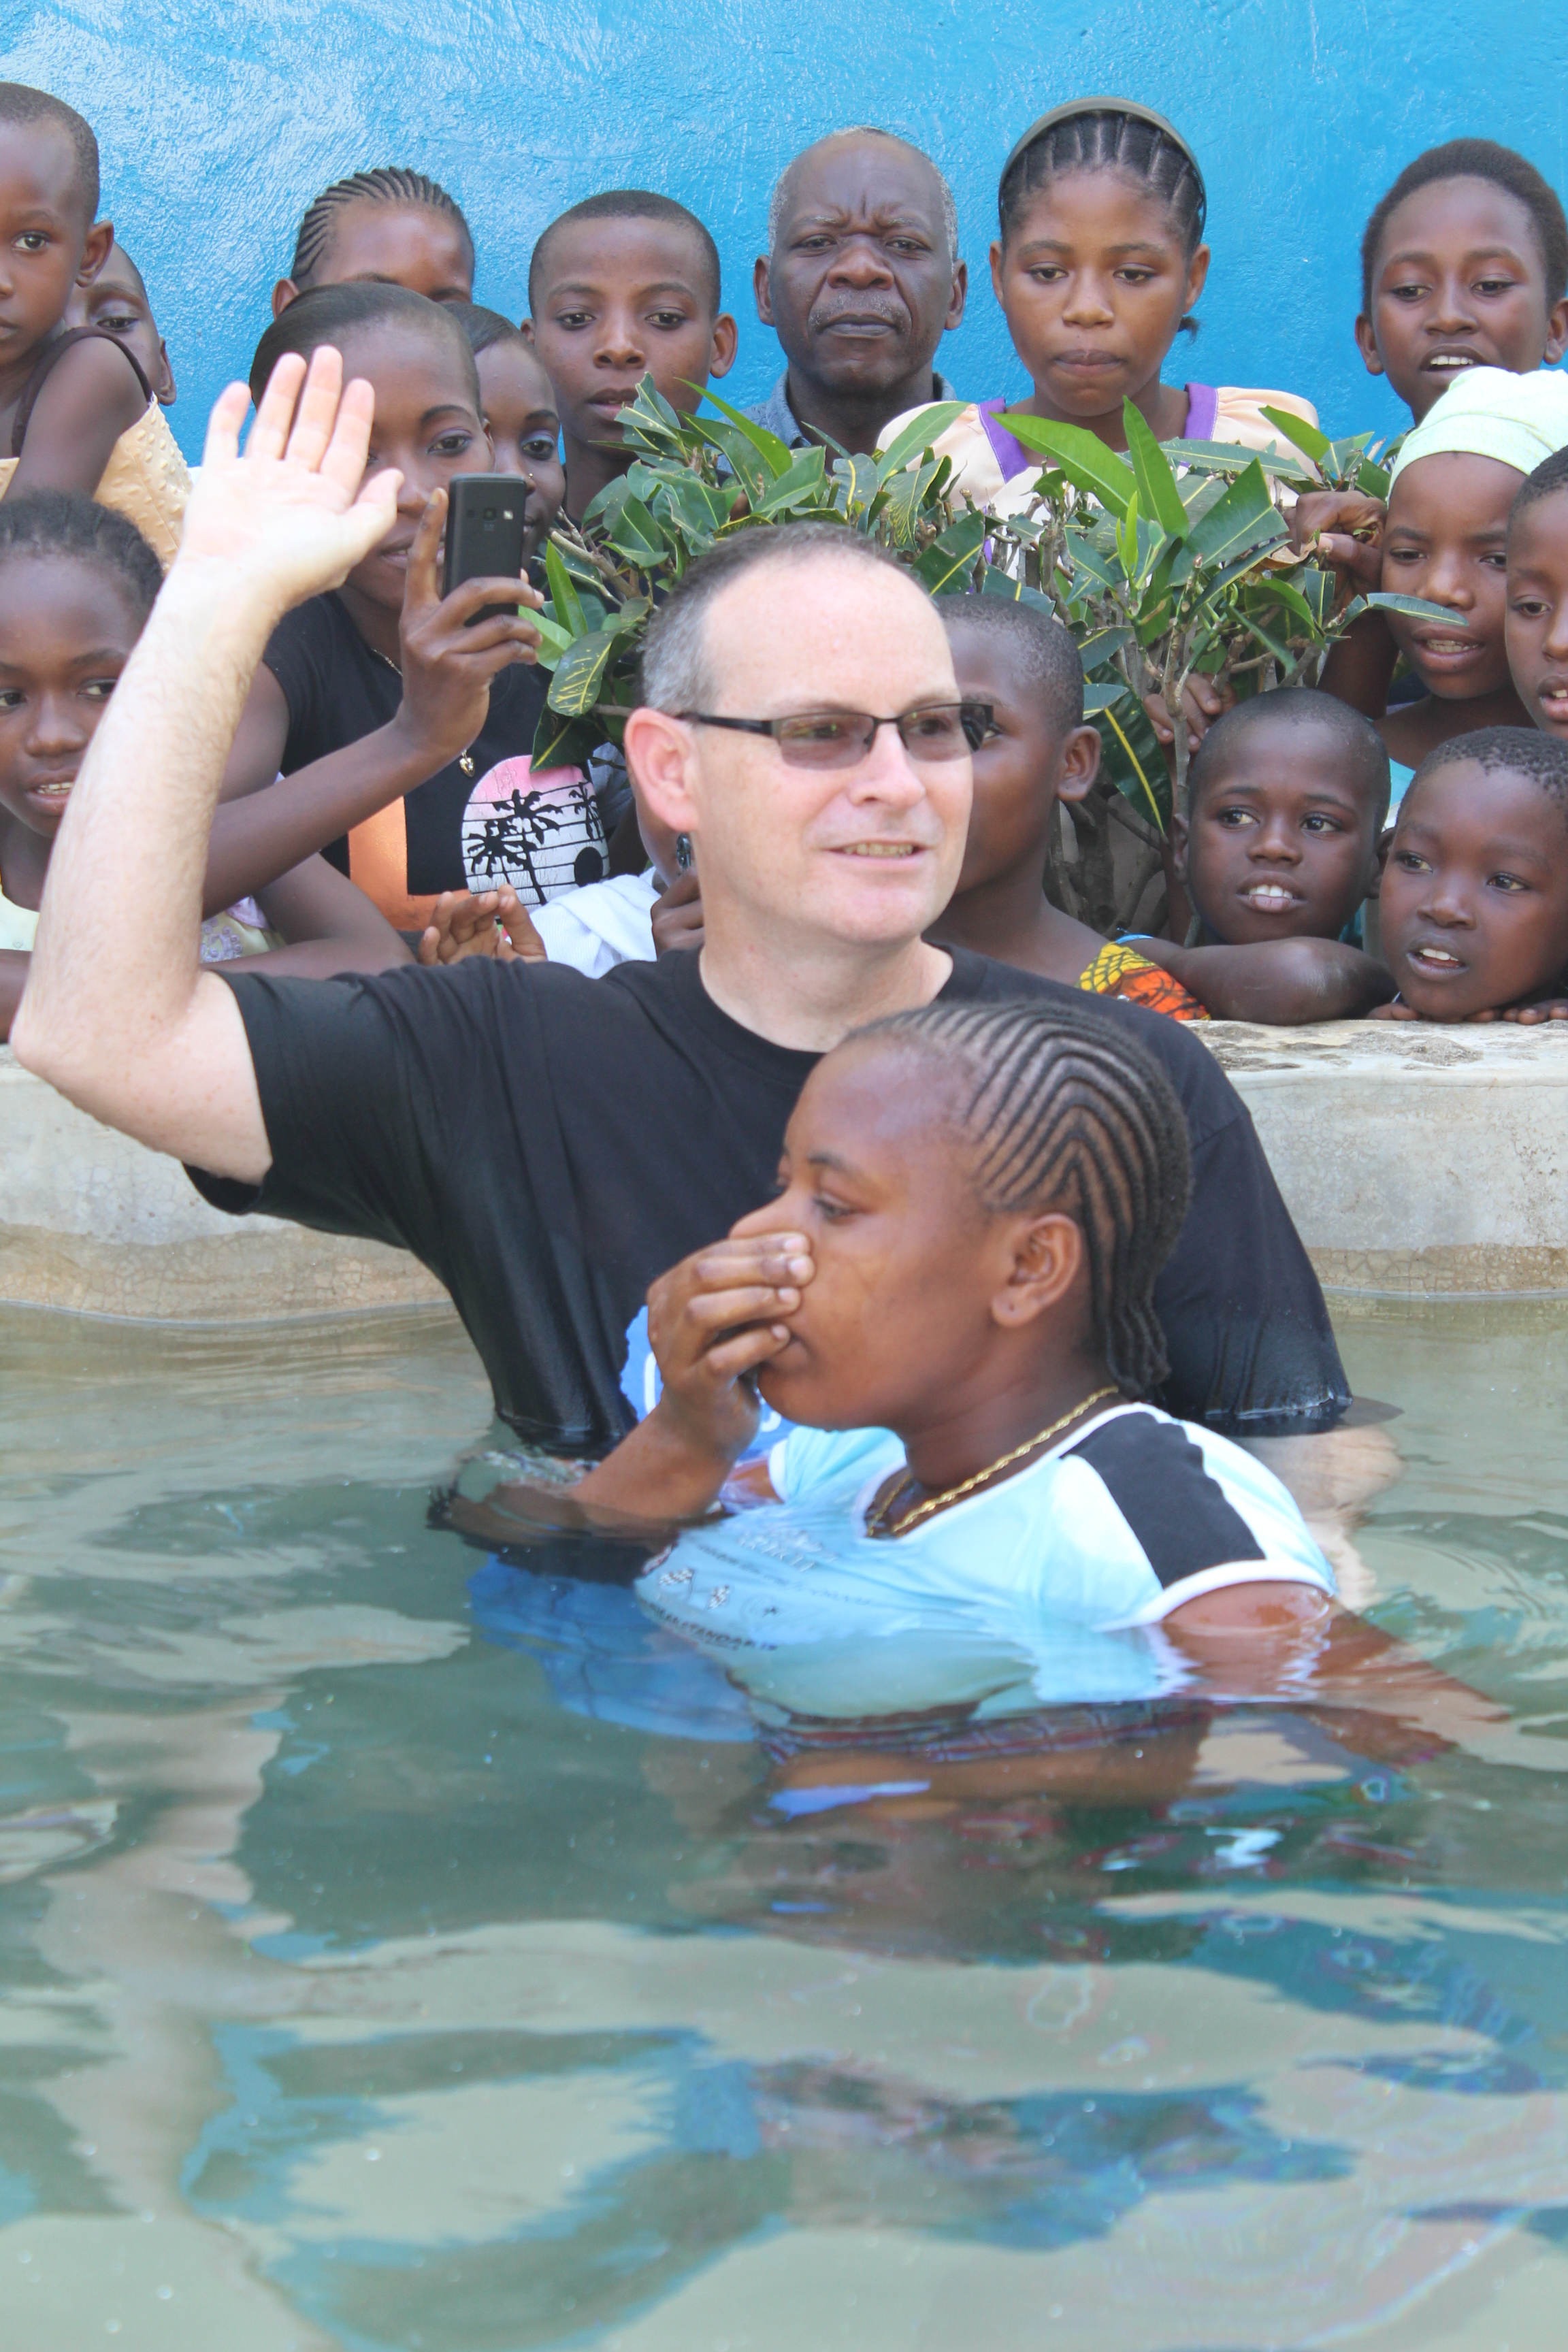 Bobby baptizing during a church service.